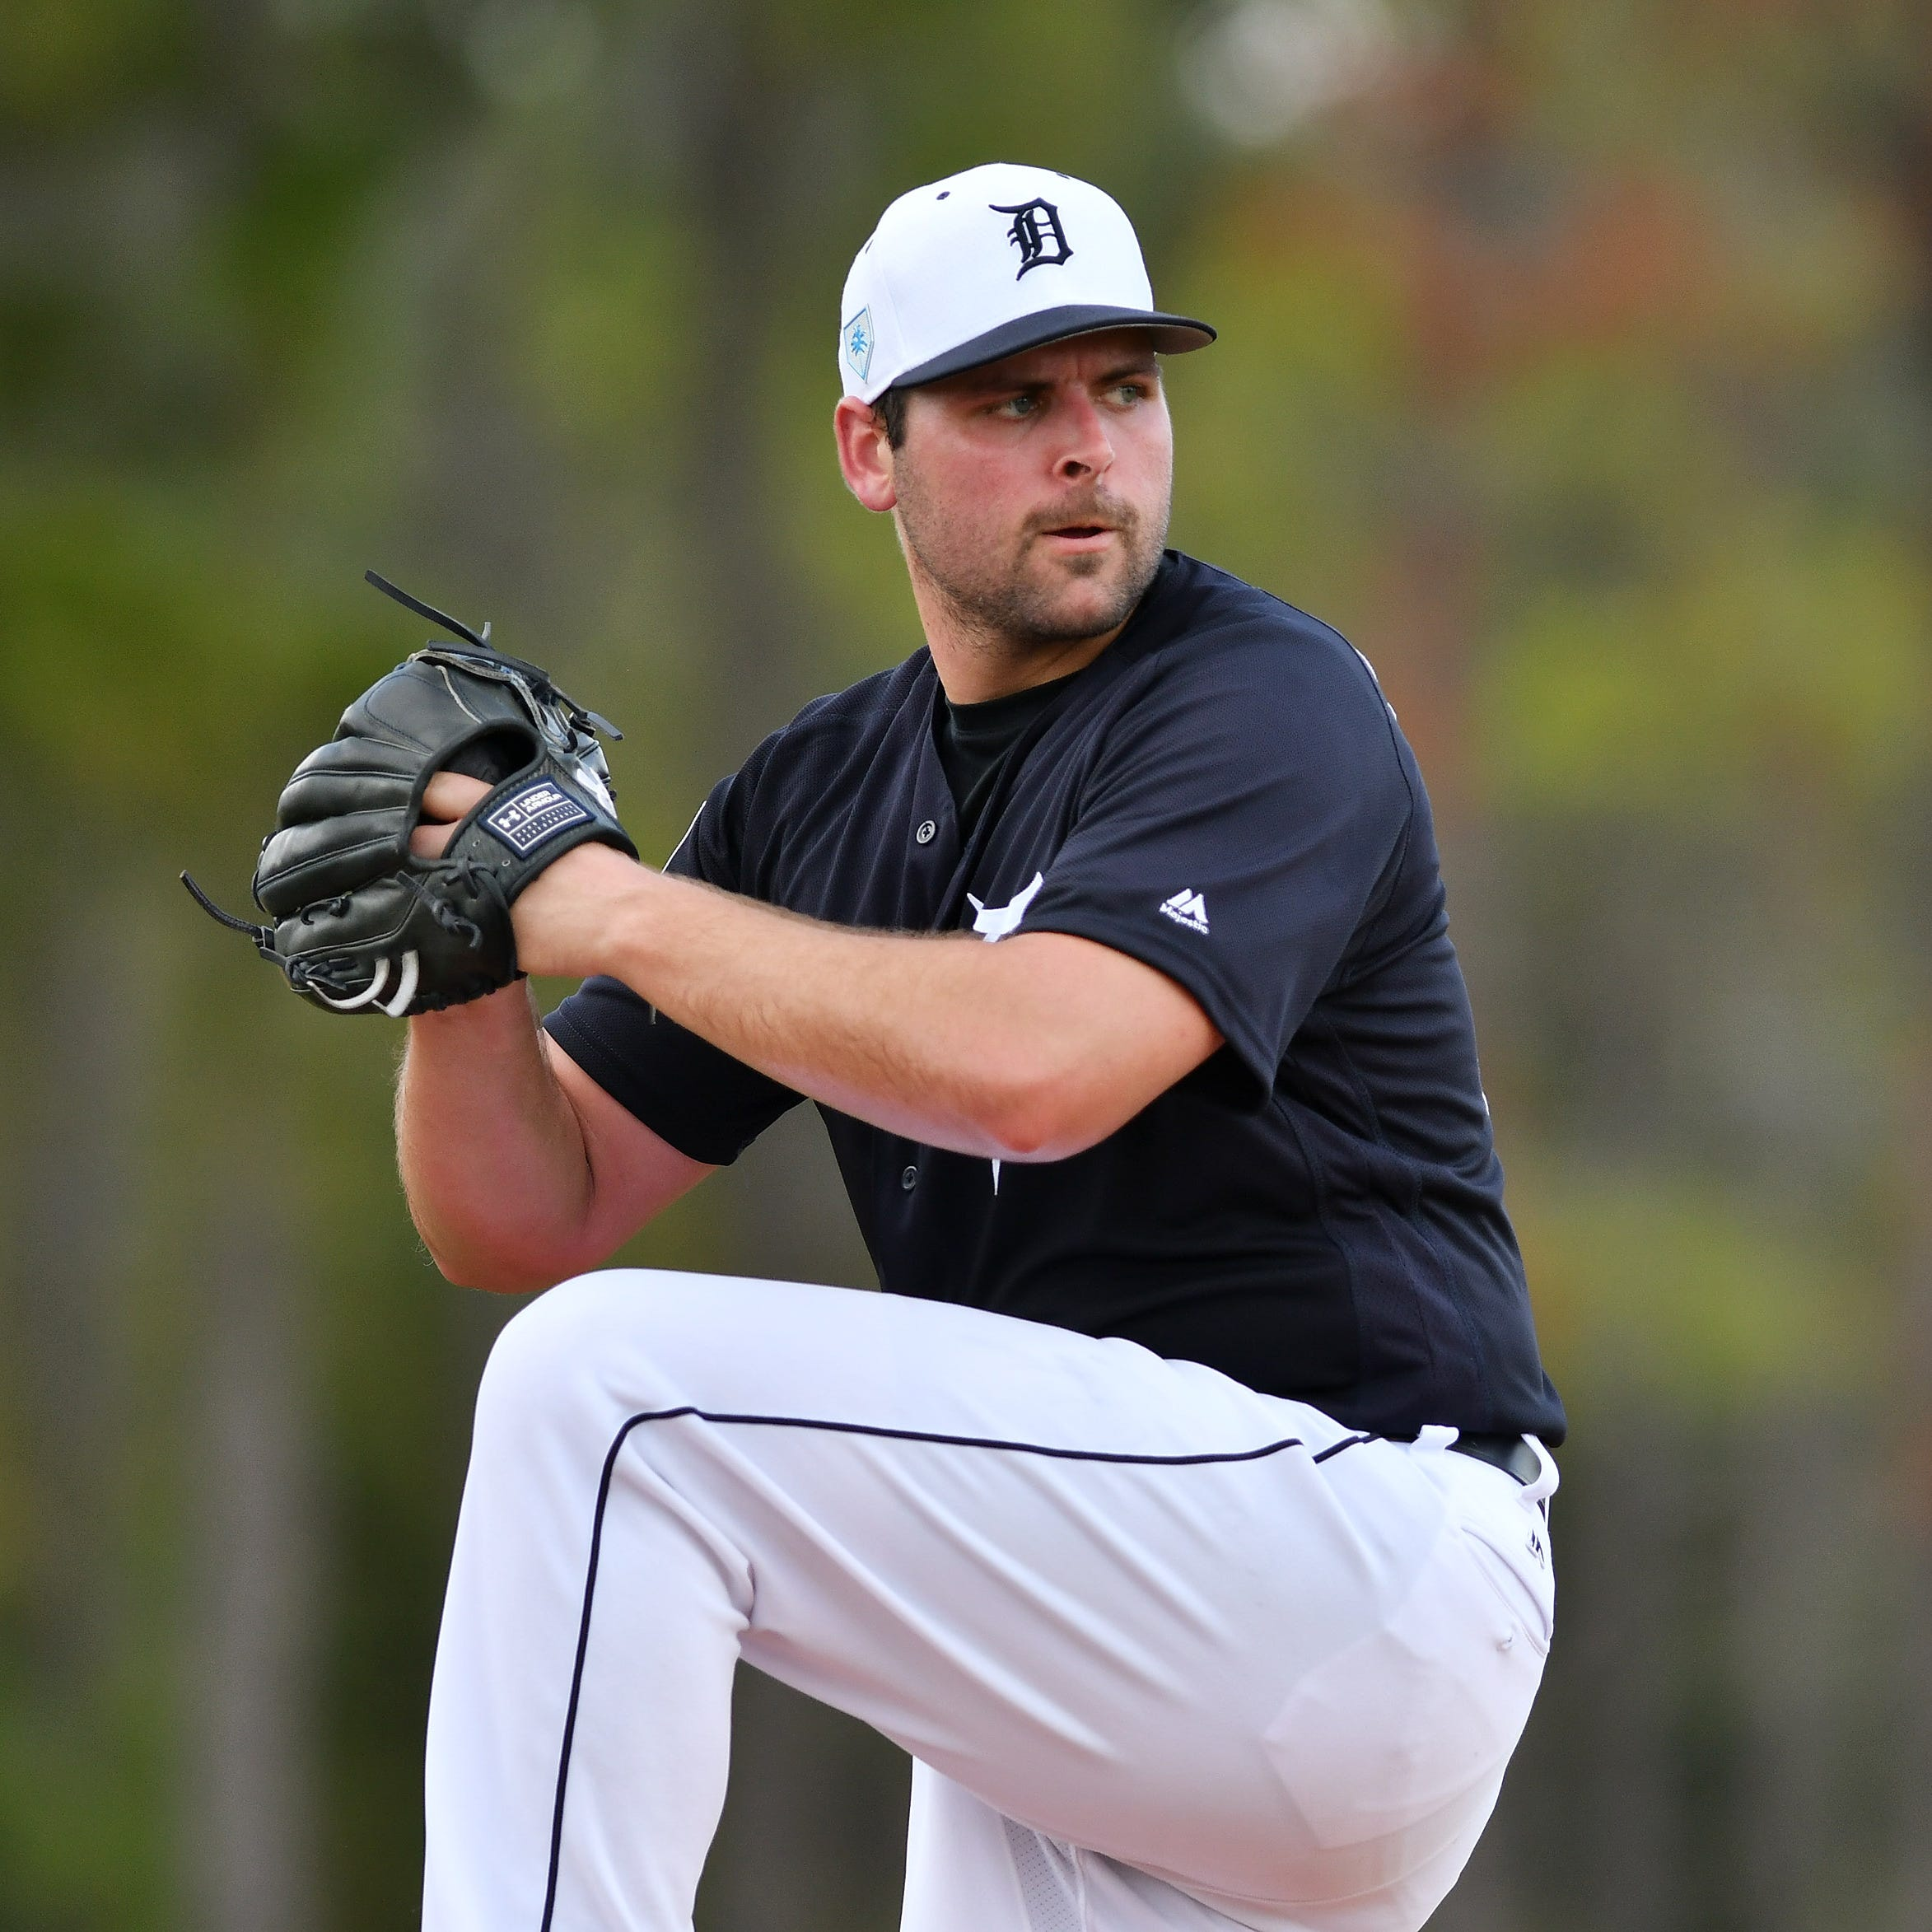 Tigers say Tommy John surgery recommended for Michael Fulmer